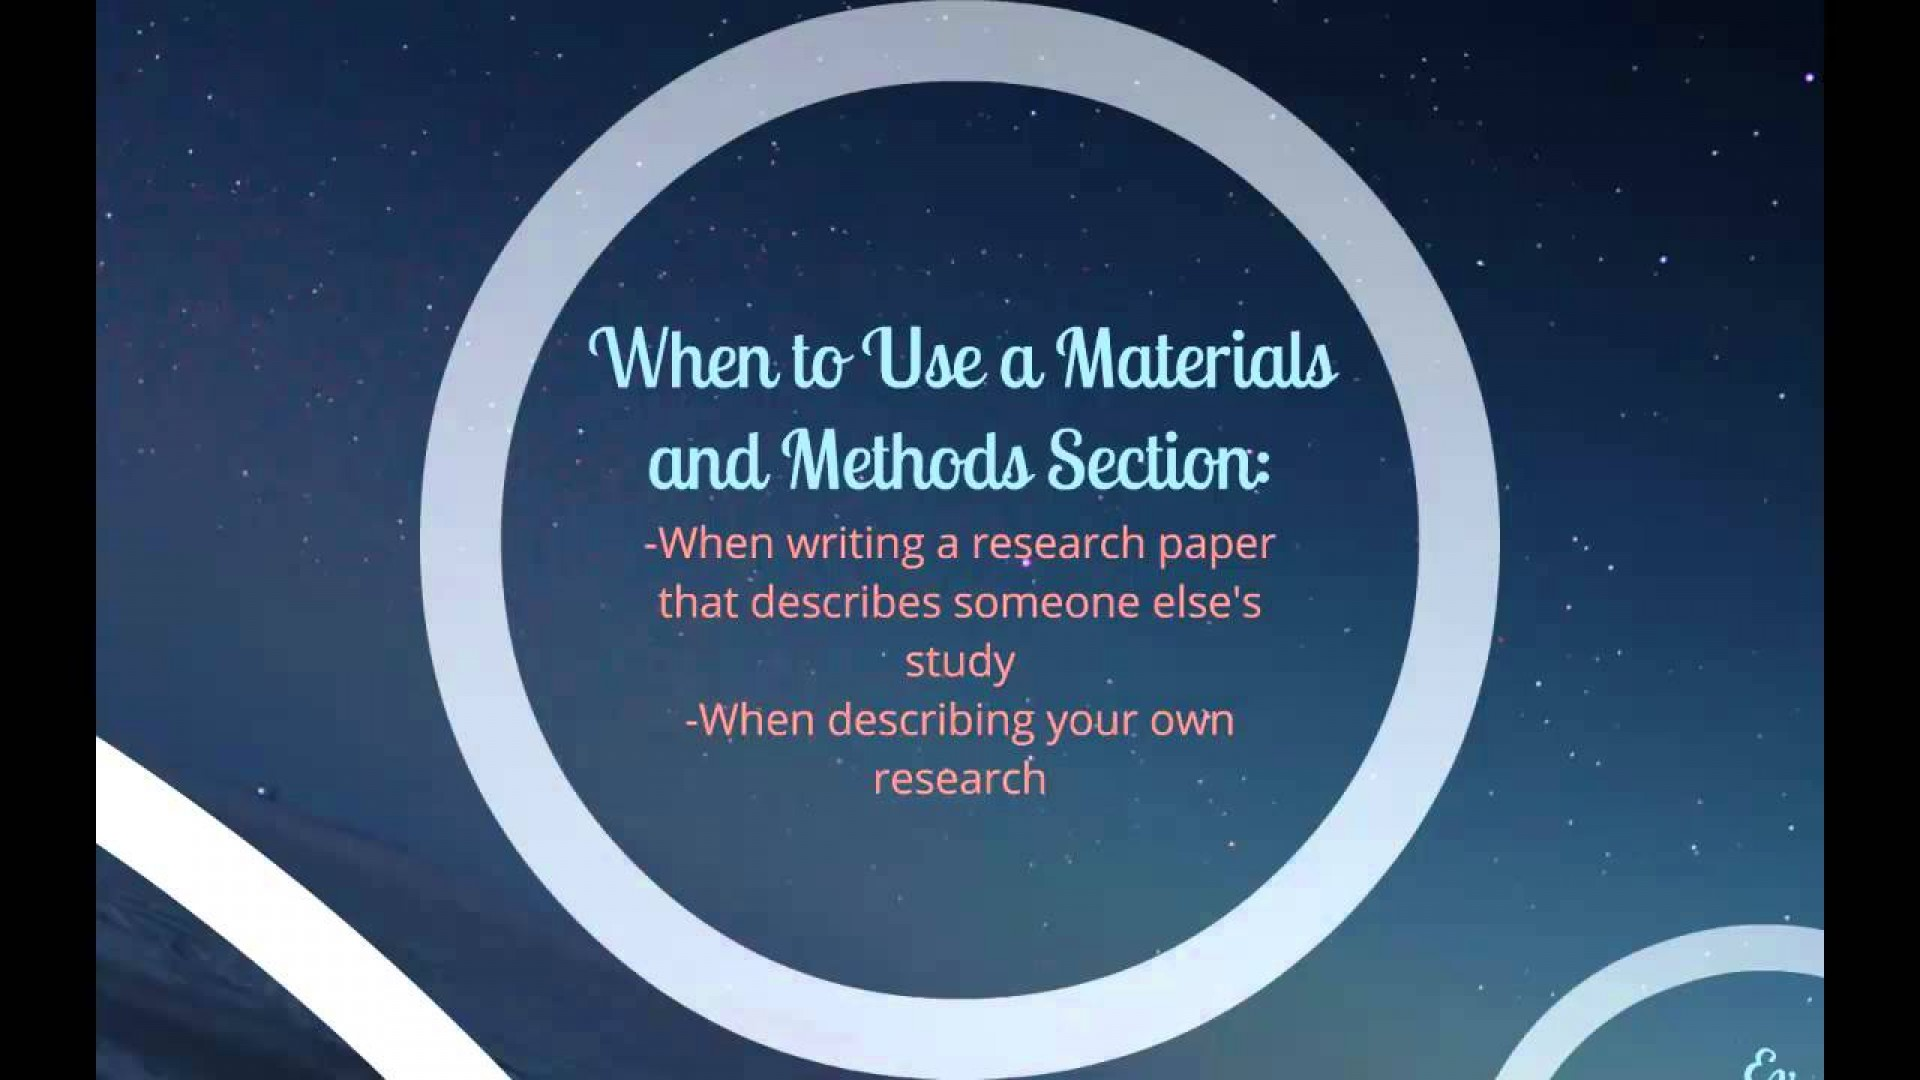 003 Research Paper How To Write Materials And Methods In Excellent A Example 1920